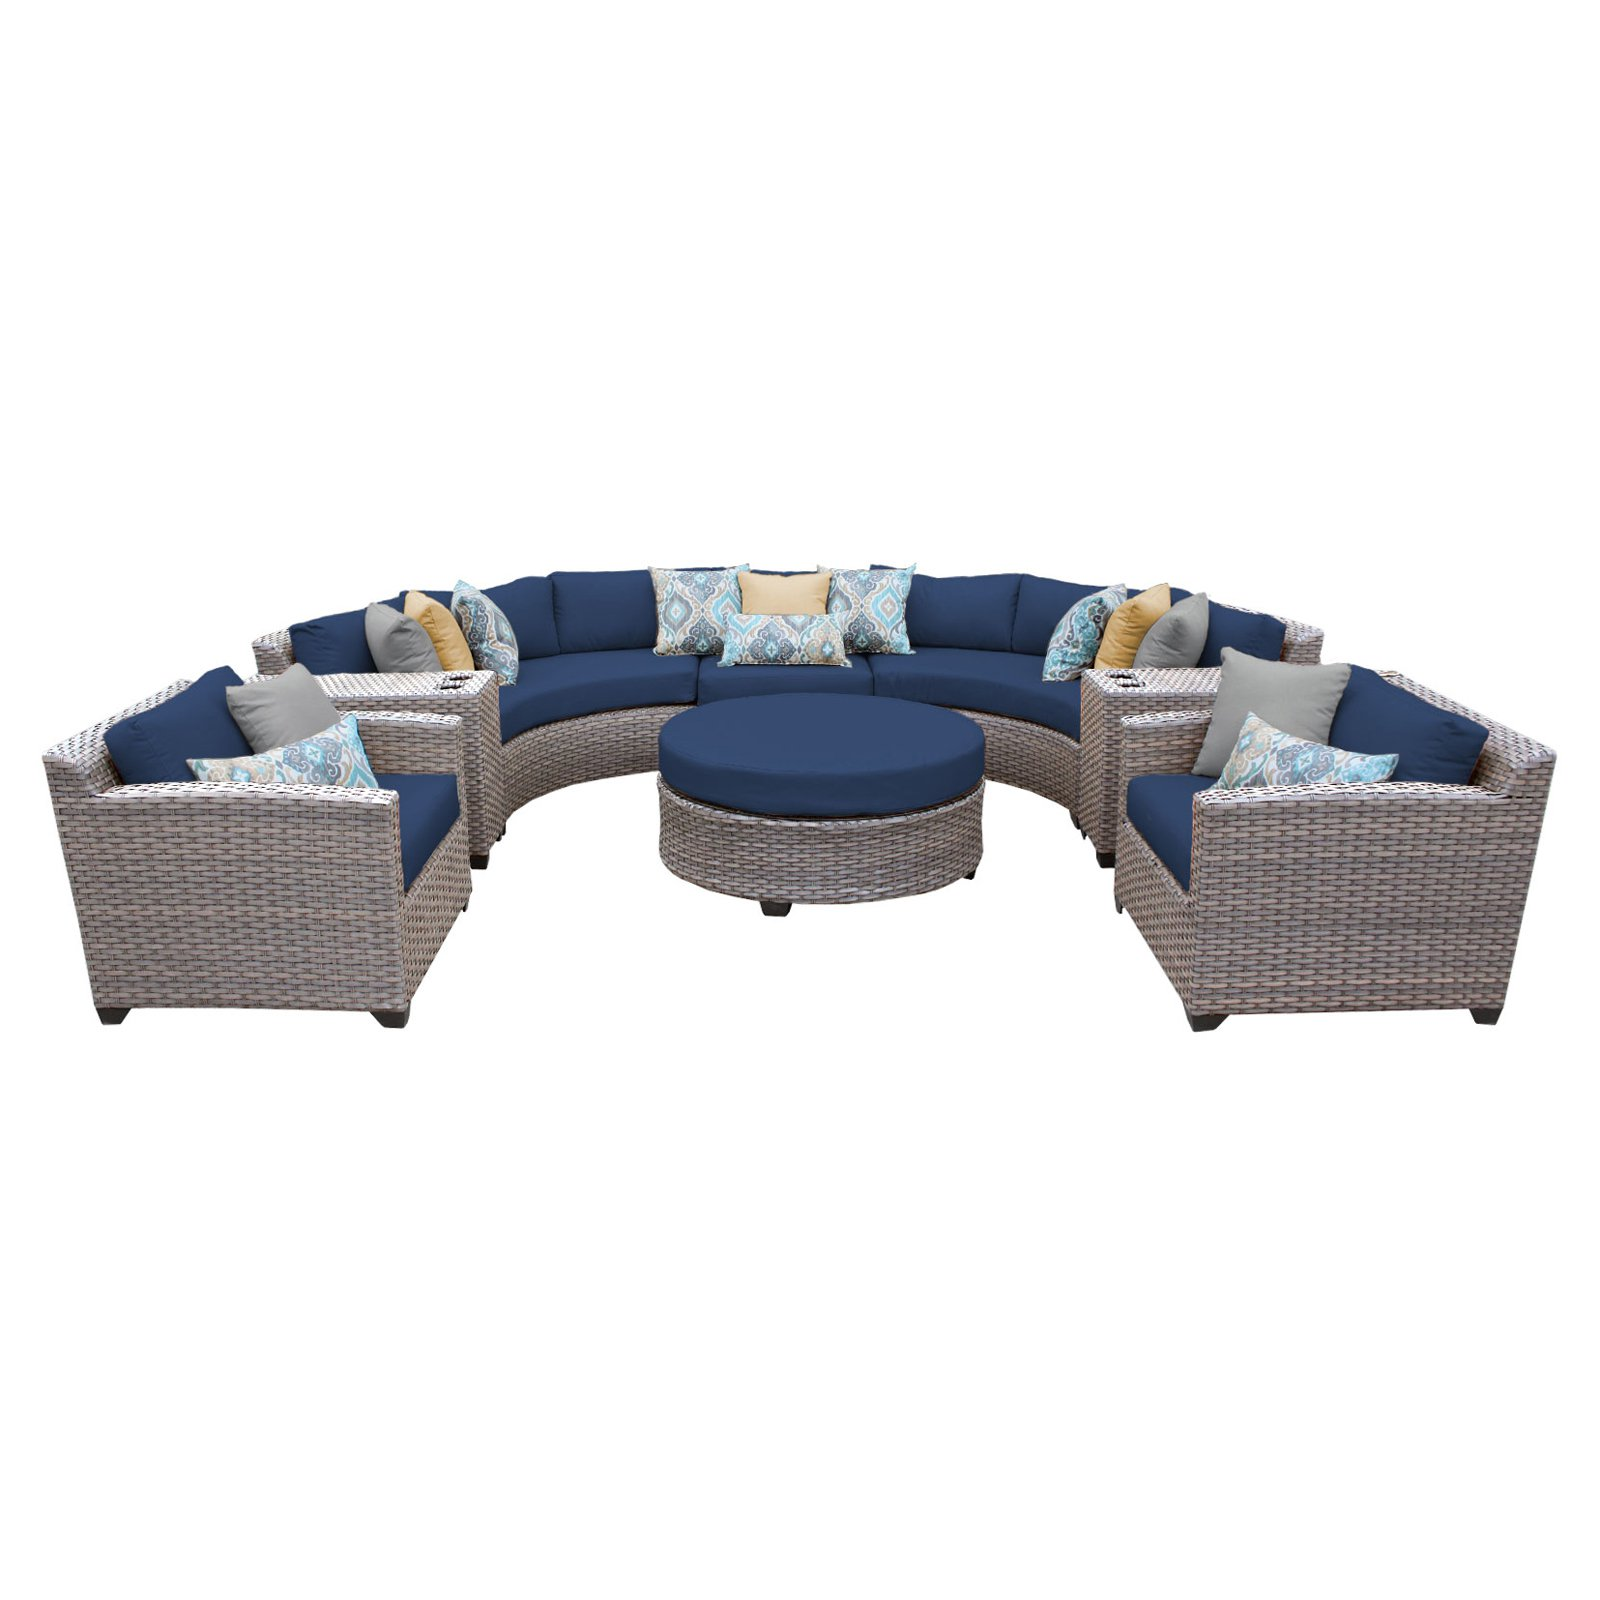 TK Classics Florence Wicker 8 Piece Patio Conversation Set with Cup Table and 2 Sets of... by Delacora